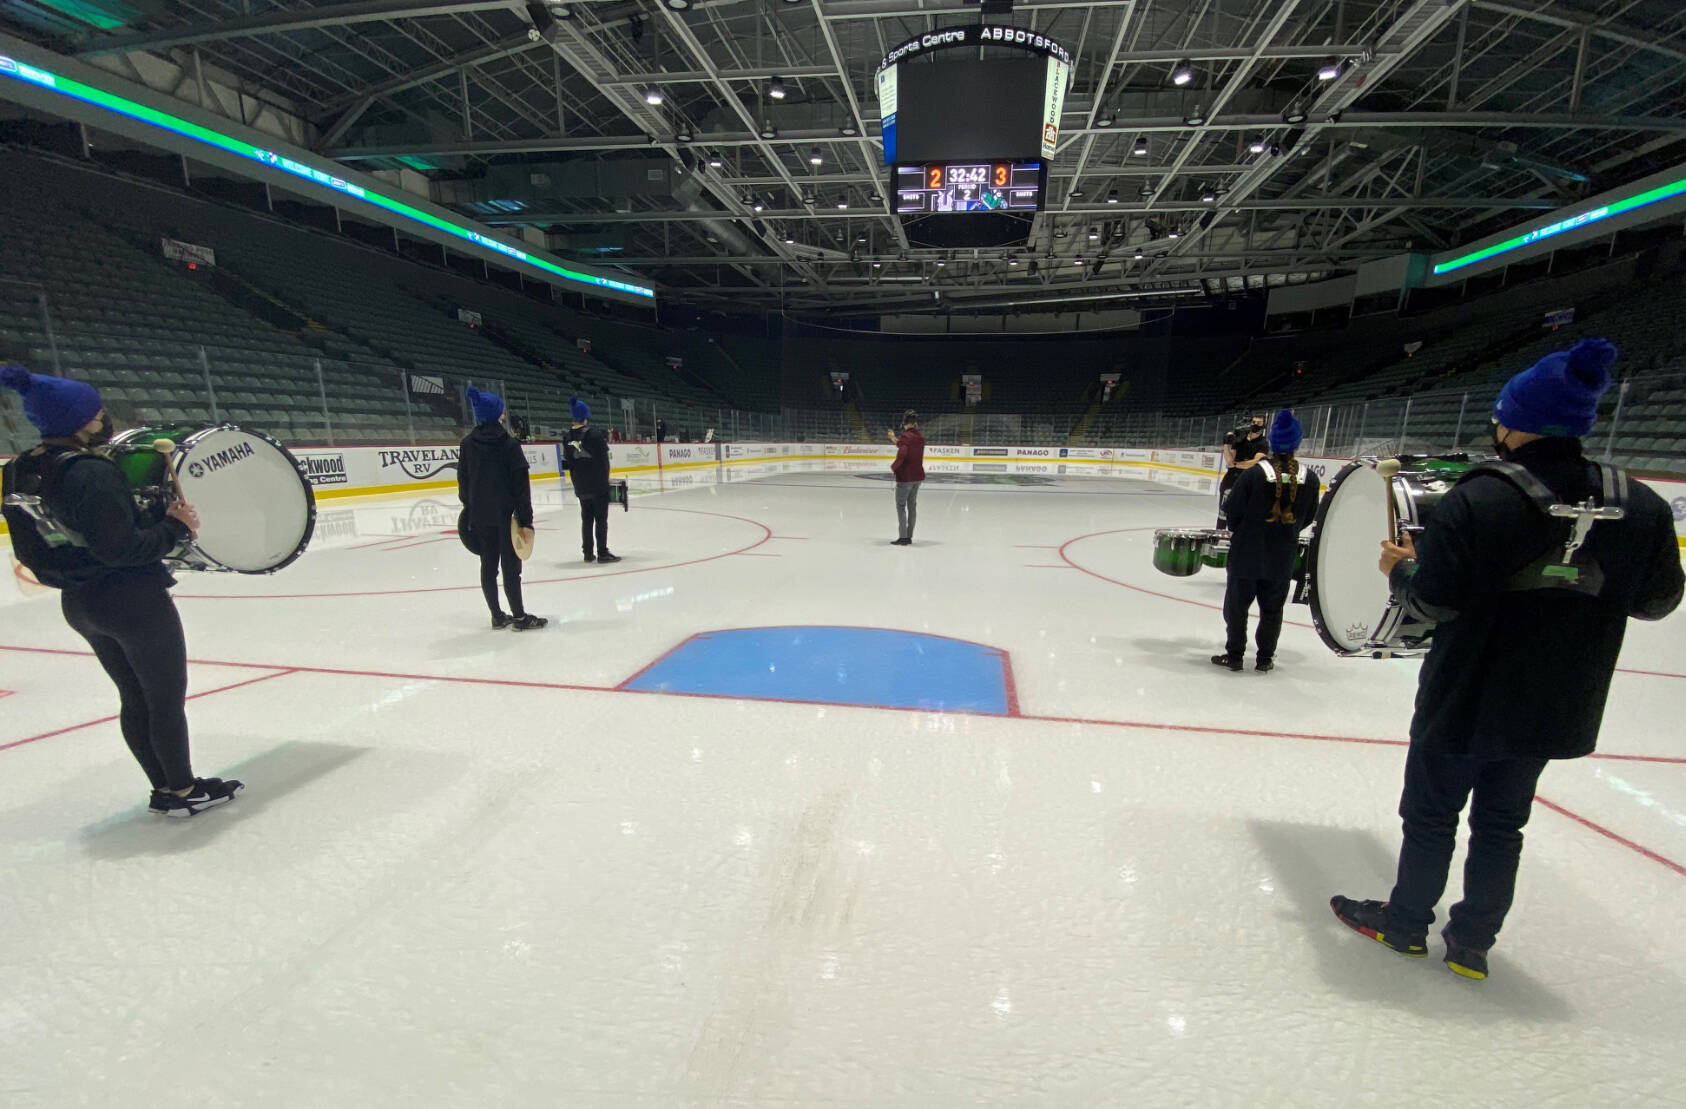 Members of the Sardis Drumline on the ice at an empty Abbotsford Centre prior to Friday night's American Hockey League game. (submitted photo)